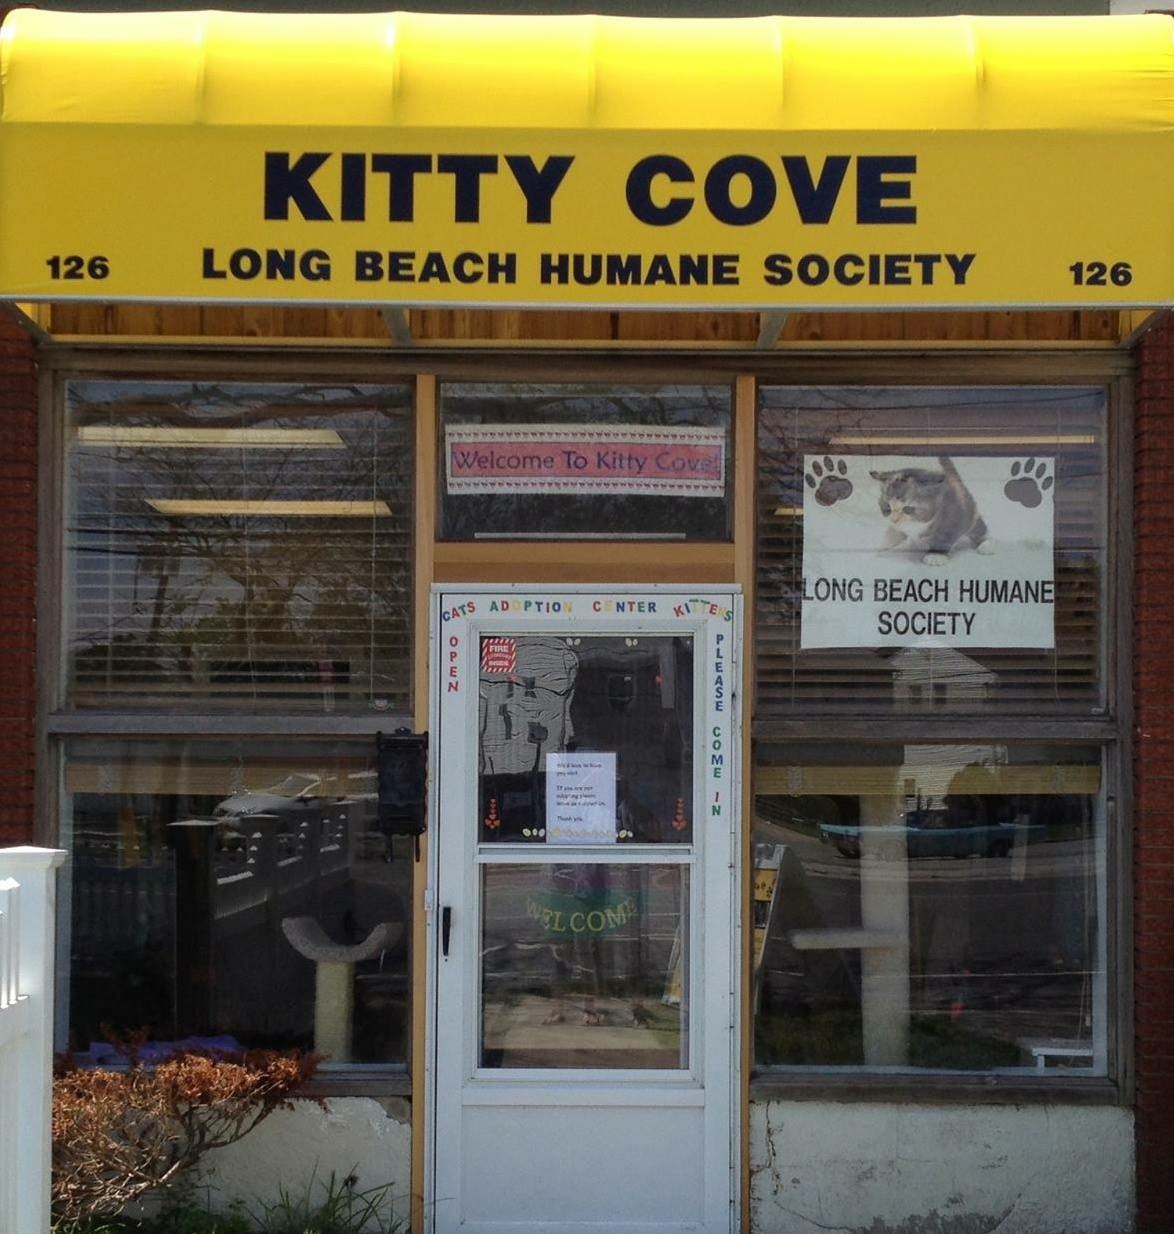 Long Beach Humane Society/Kitty Cove